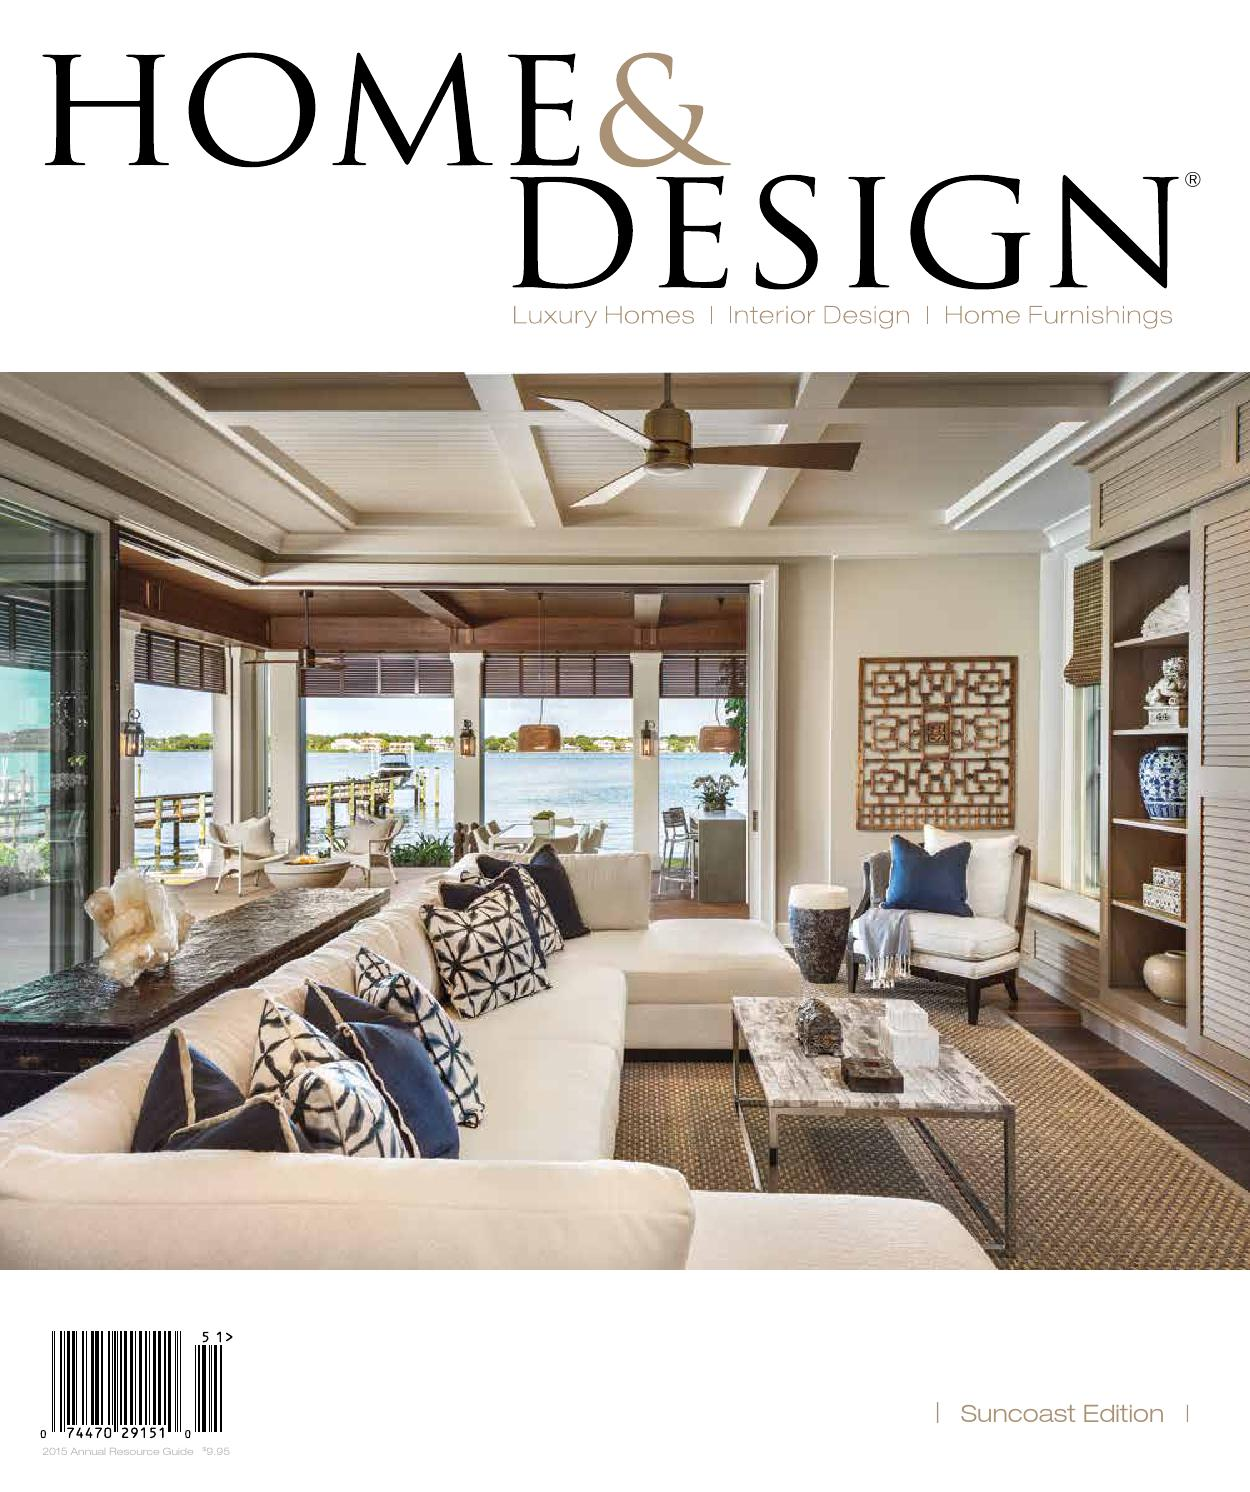 Home design magazine annual resource guide 2015 for Home by design